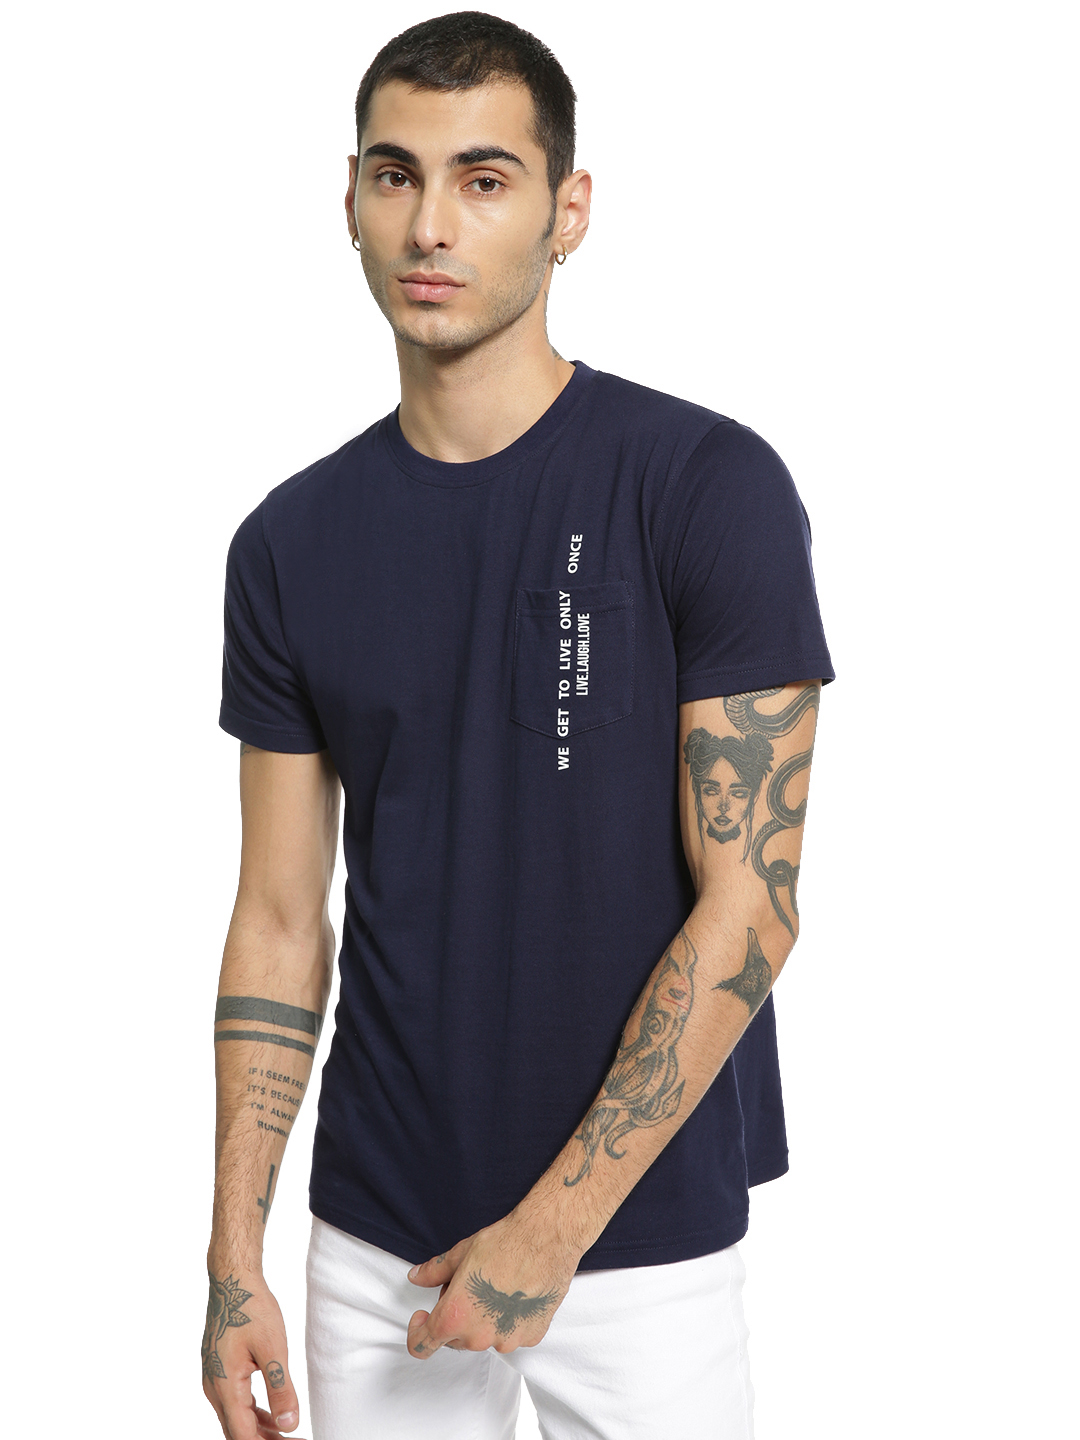 Garcon Navy Pocket Slogan Print T-Shirt 1